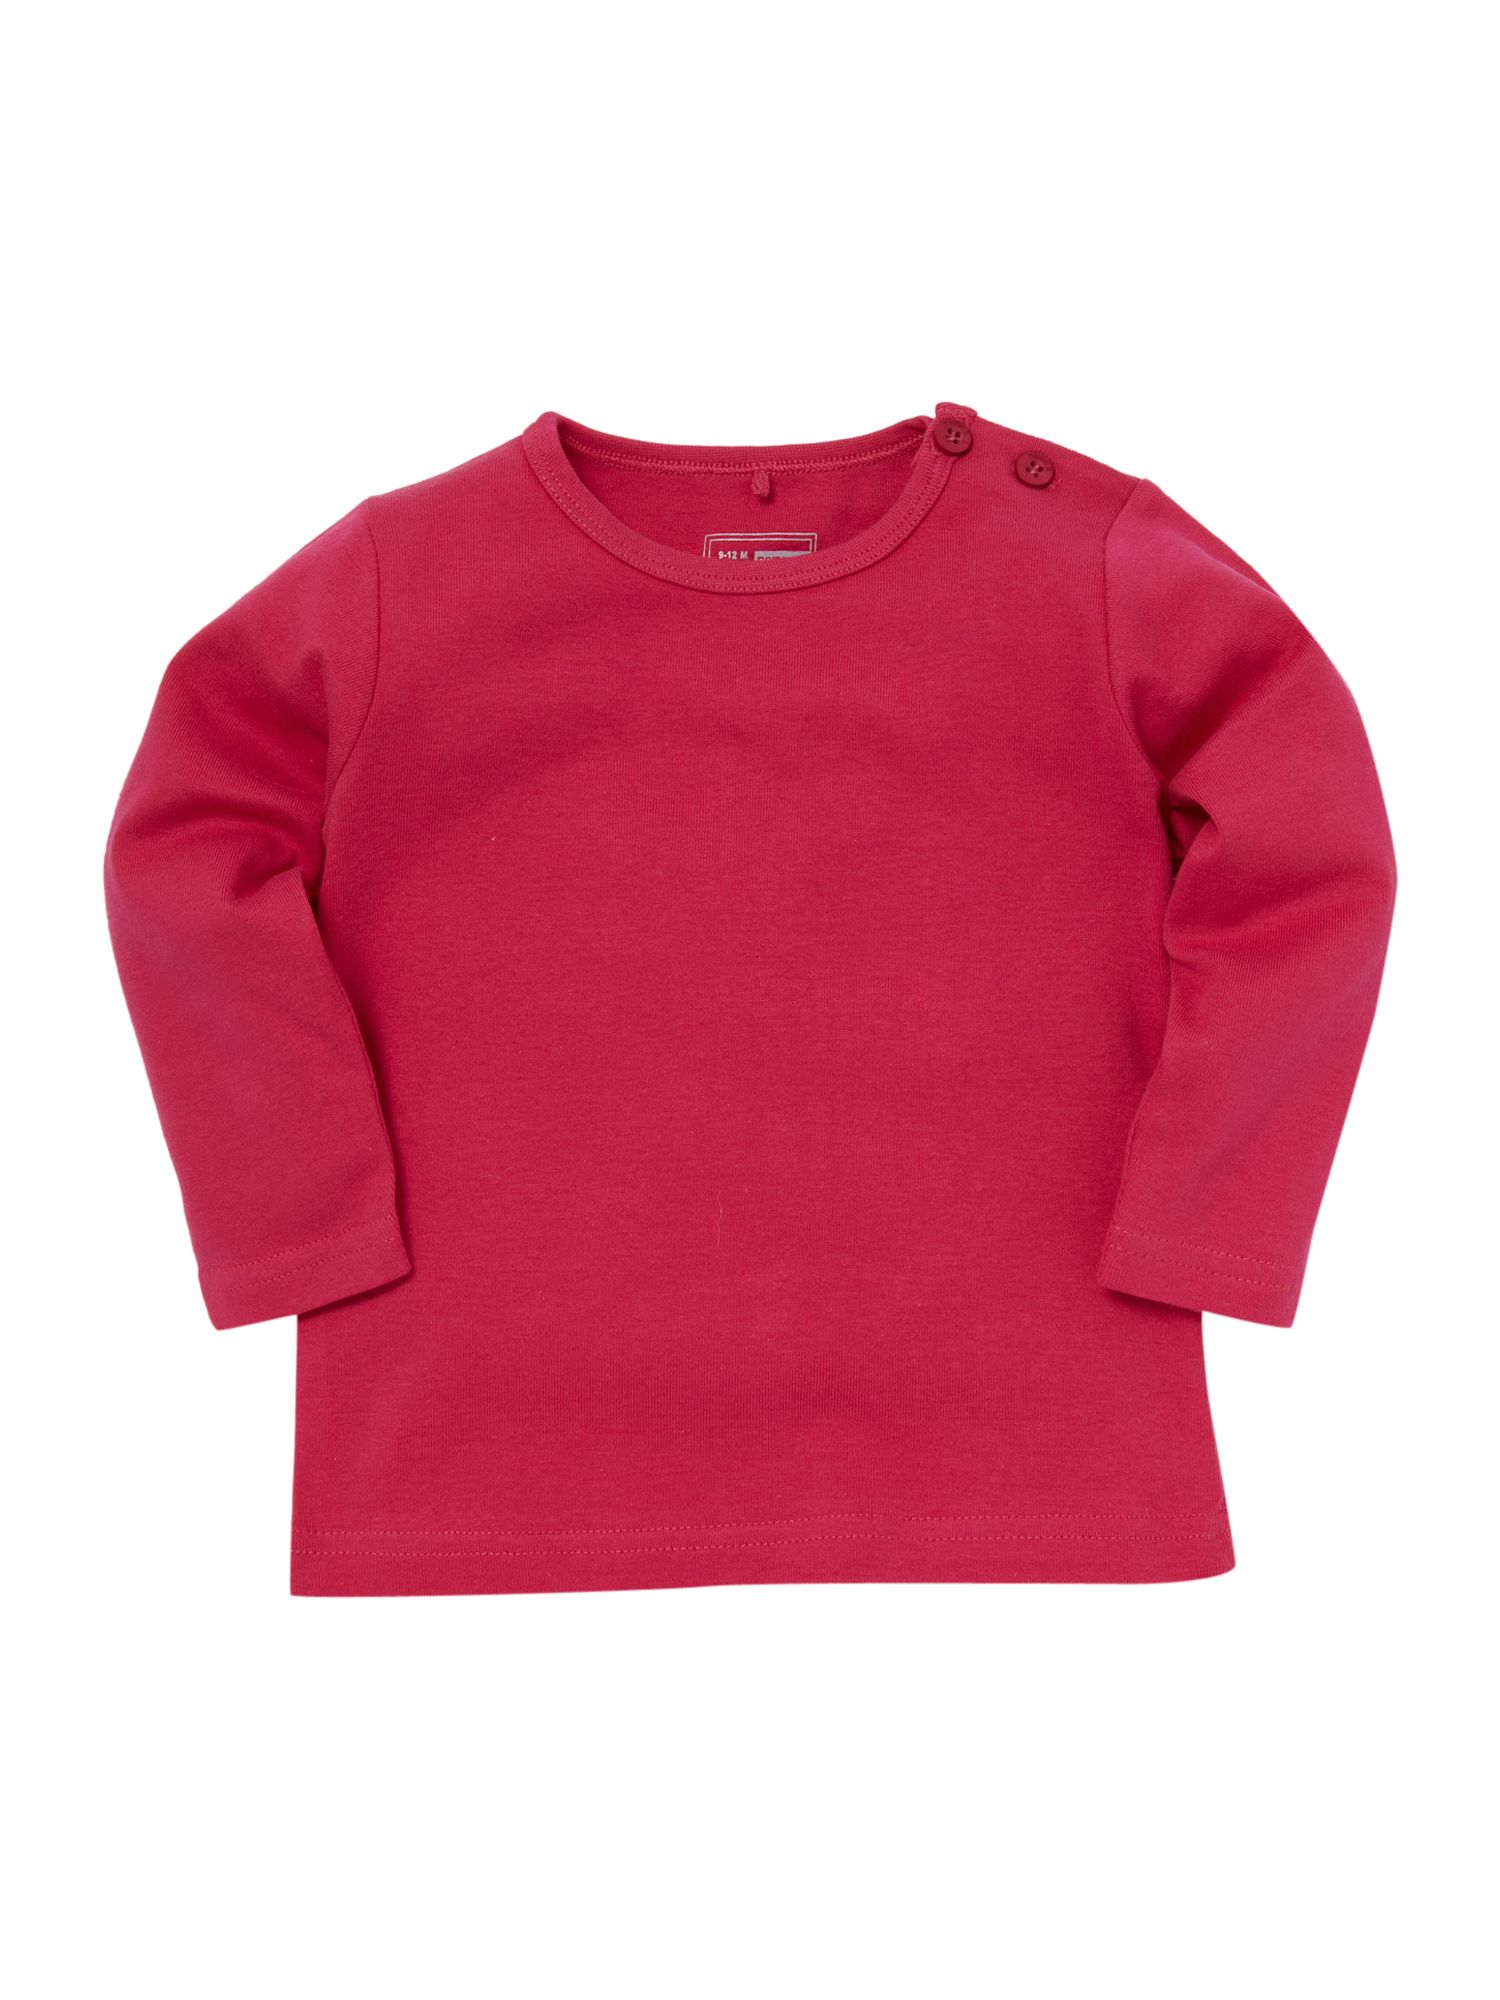 name it Long-sleeved plain T-shirt - Lilac `12 mths,18 product image